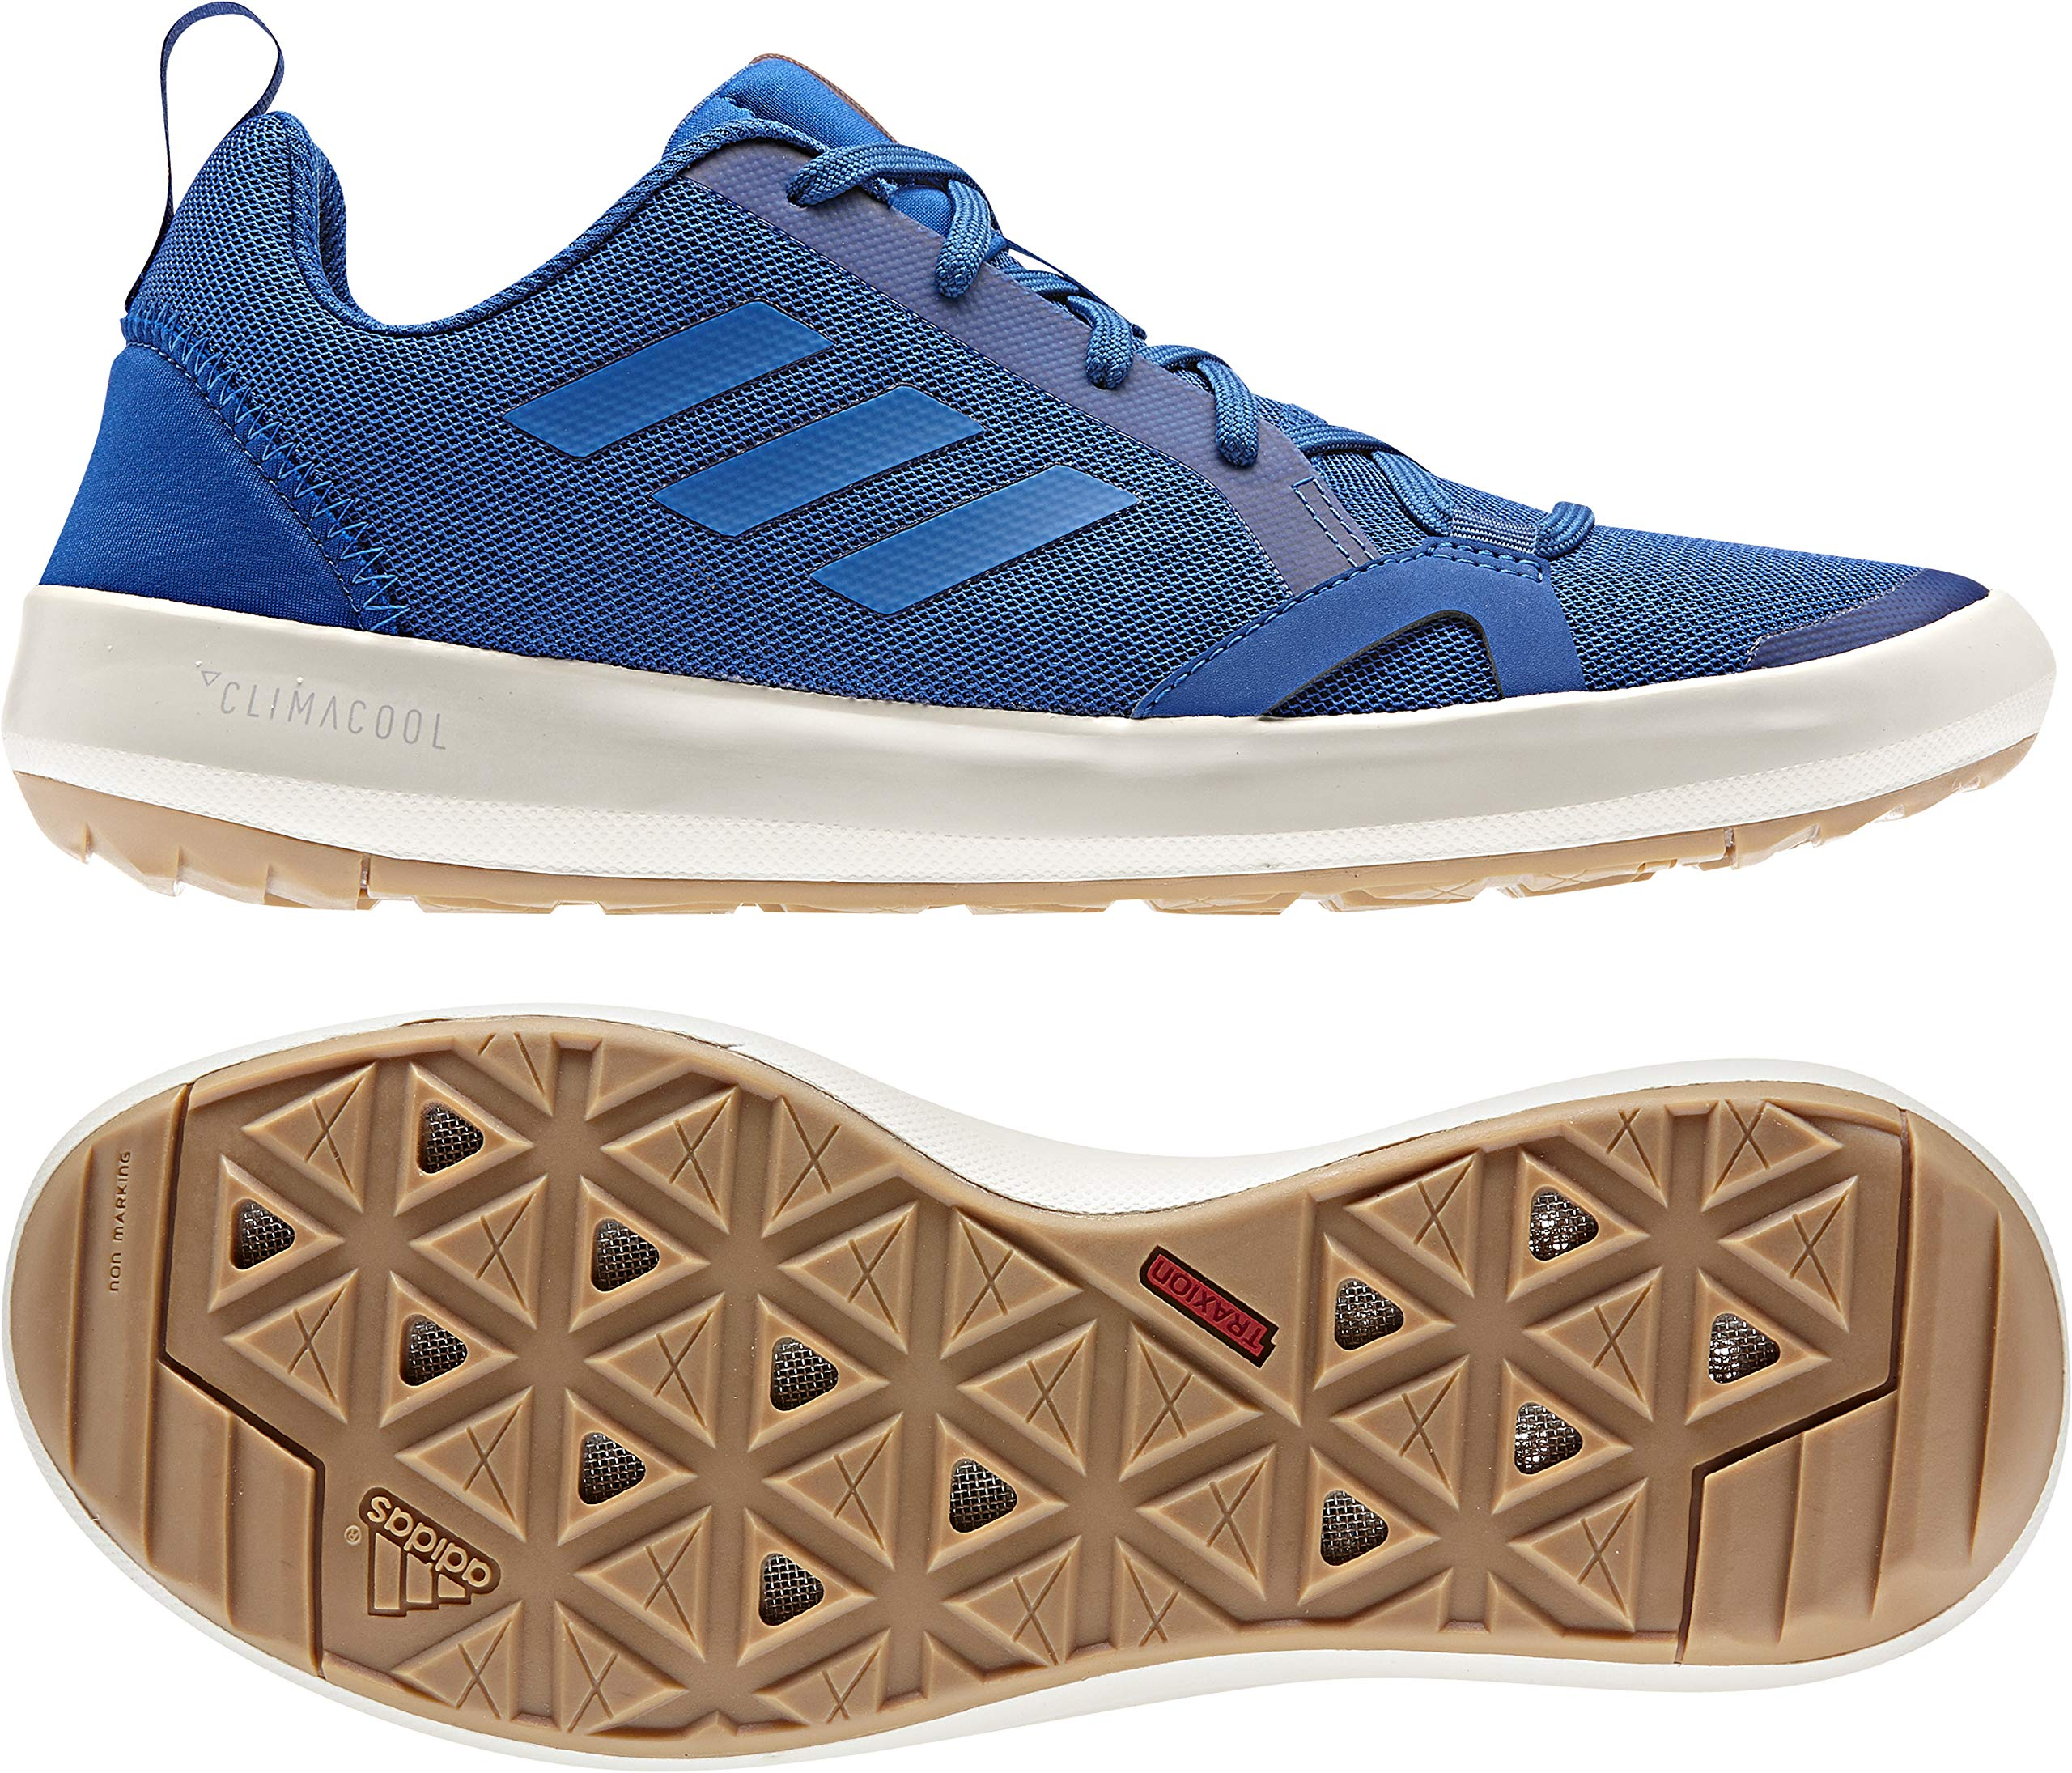 Adidas Terrex CC Boat Shoe - Men's Blue Beauty/Blue Beauty/Chalk White 6.5